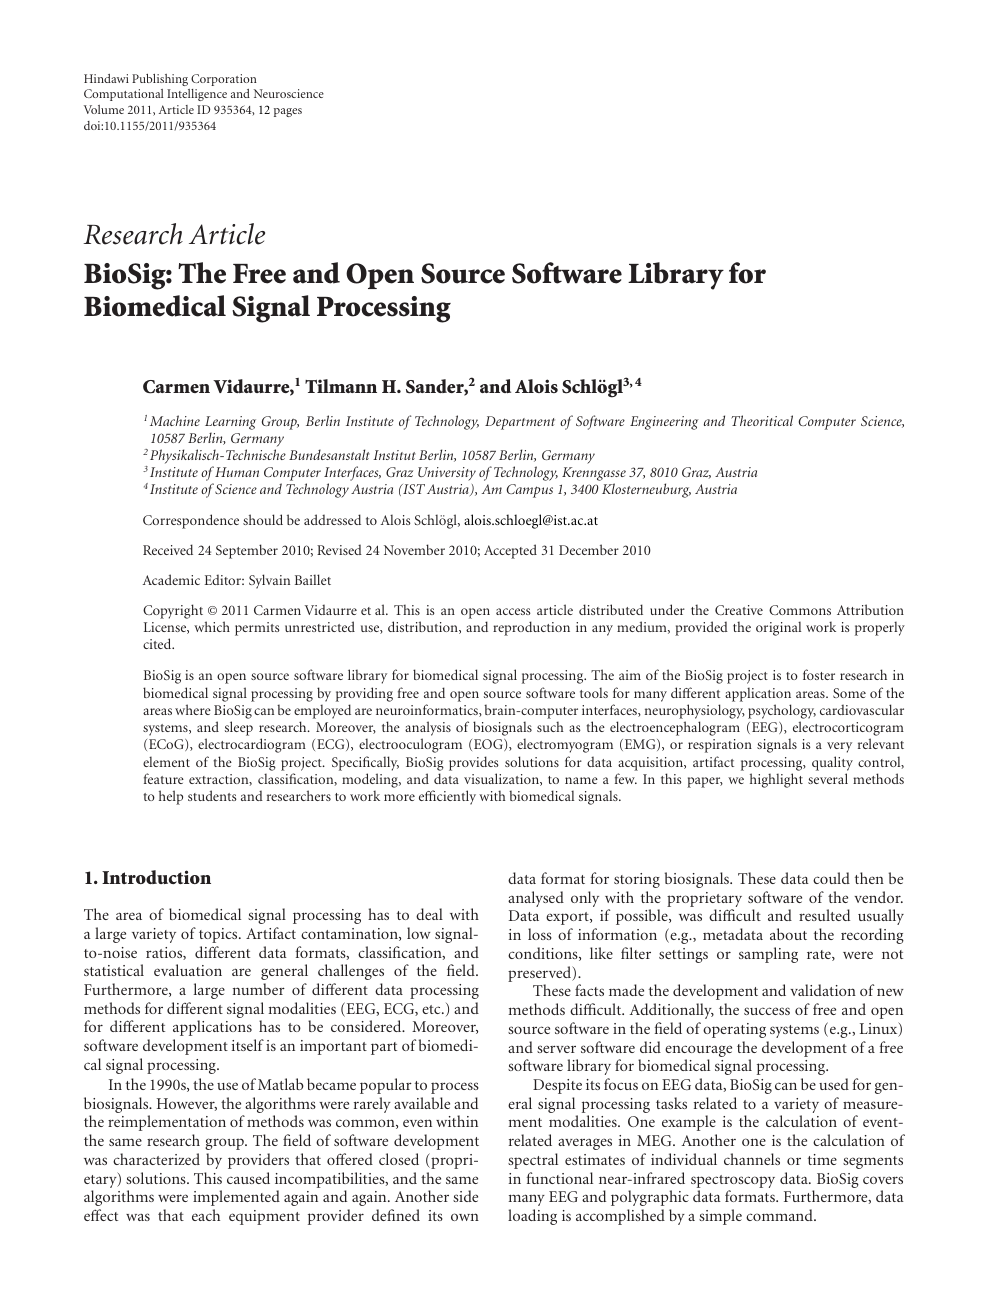 BioSig: The Free and Open Source Software Library for